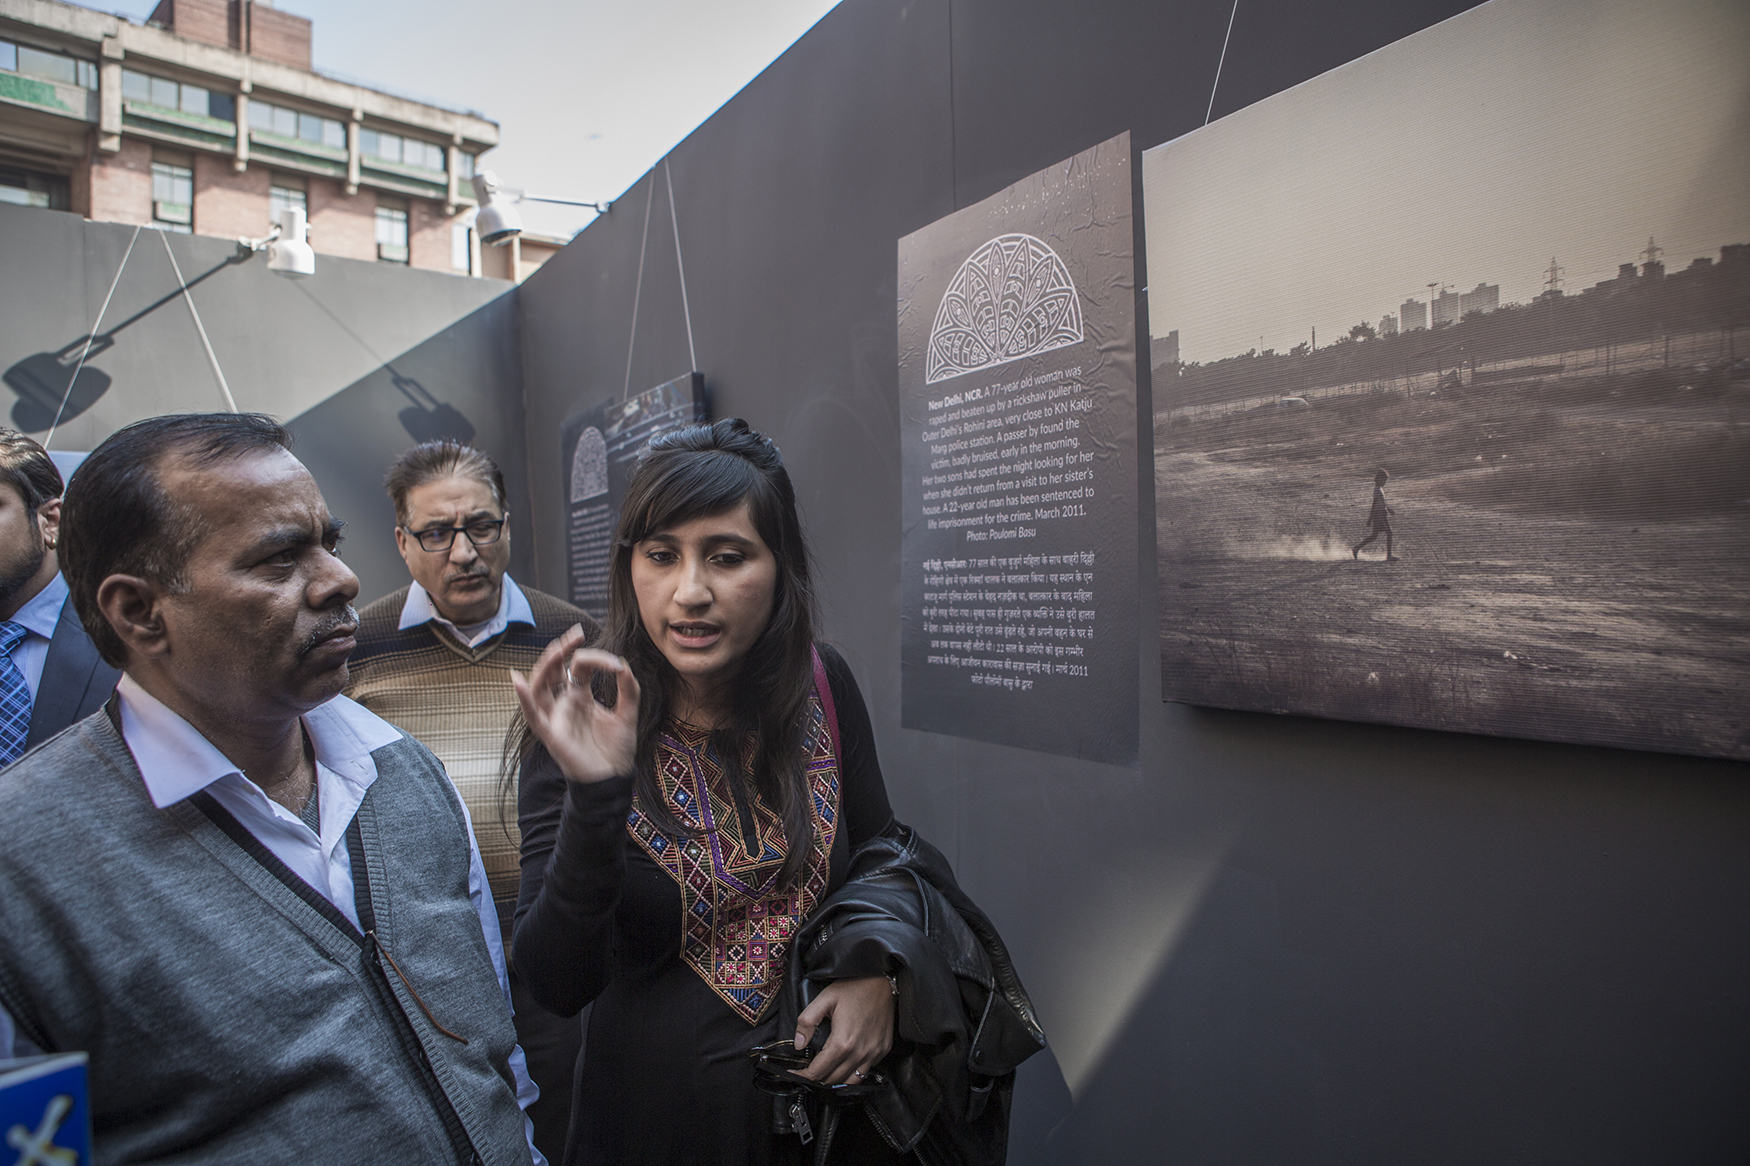 Unearthed opening, 16 December 2015